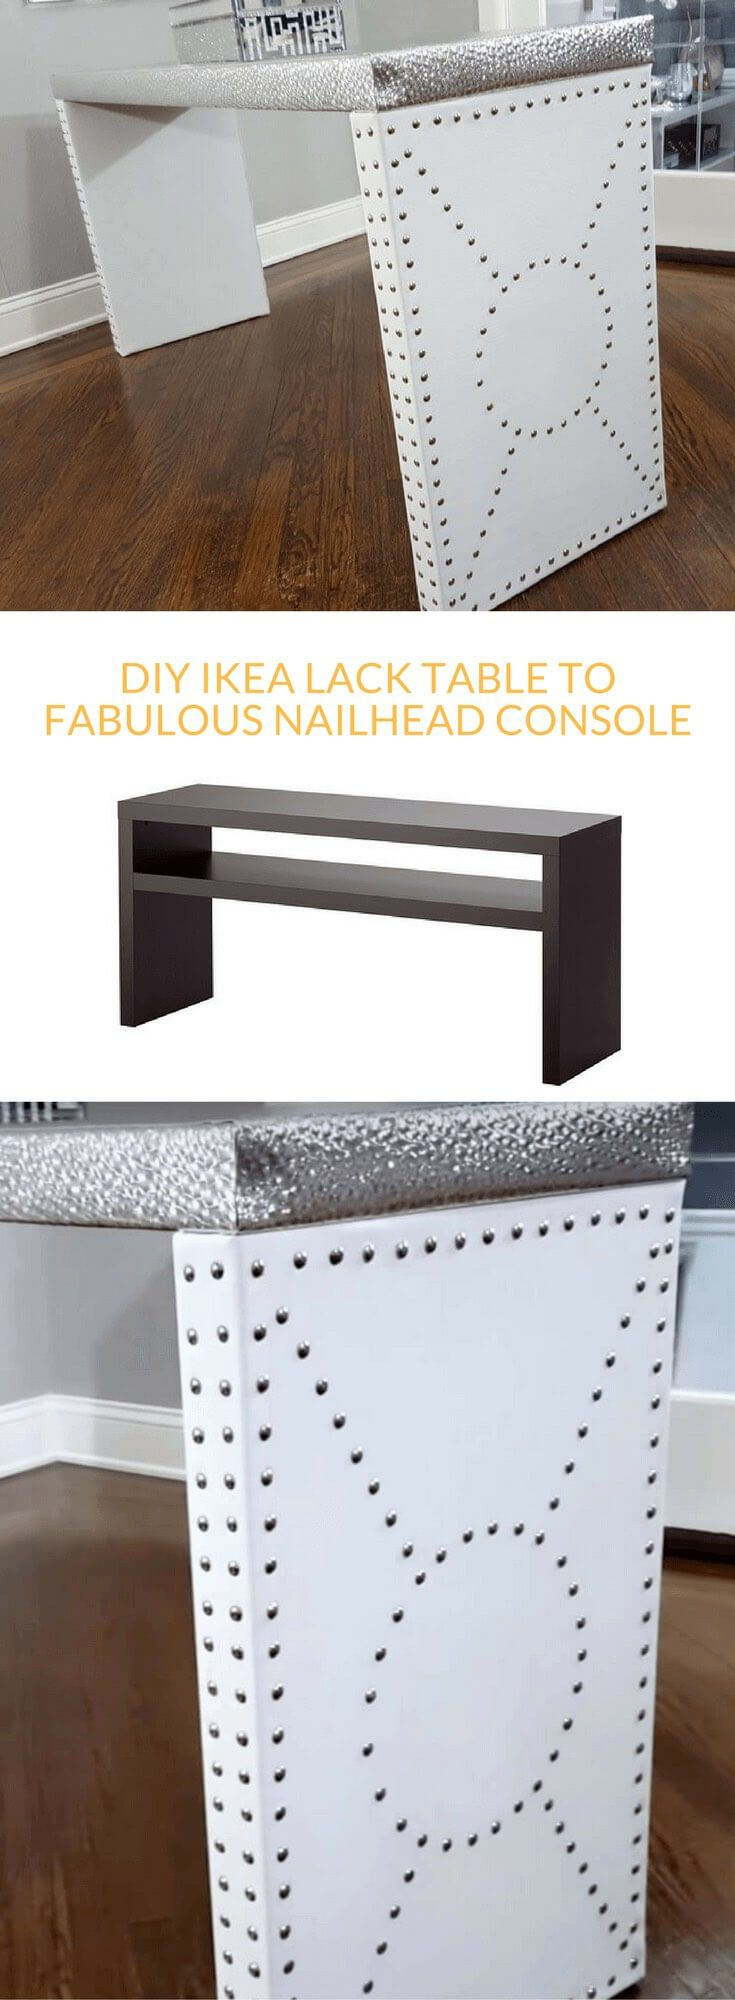 Nailhead Console Table: An Entryway Table Luxe Upgrade  Http://www.ikeahackers